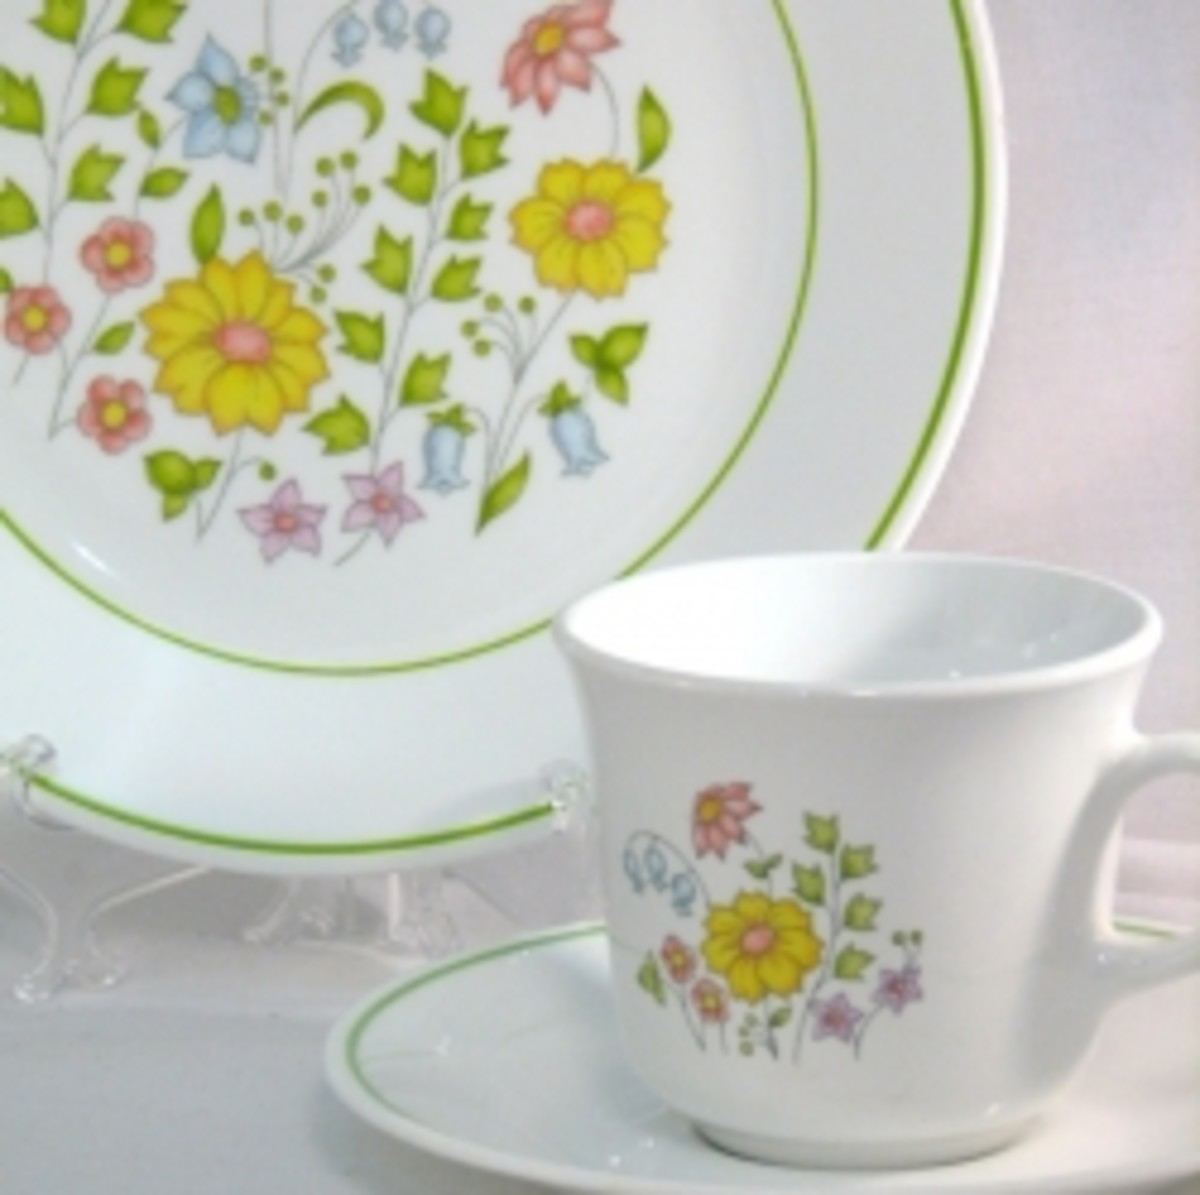 sc 1 st  HubPages & My First Dinnerware - Vintage Corelle | HubPages